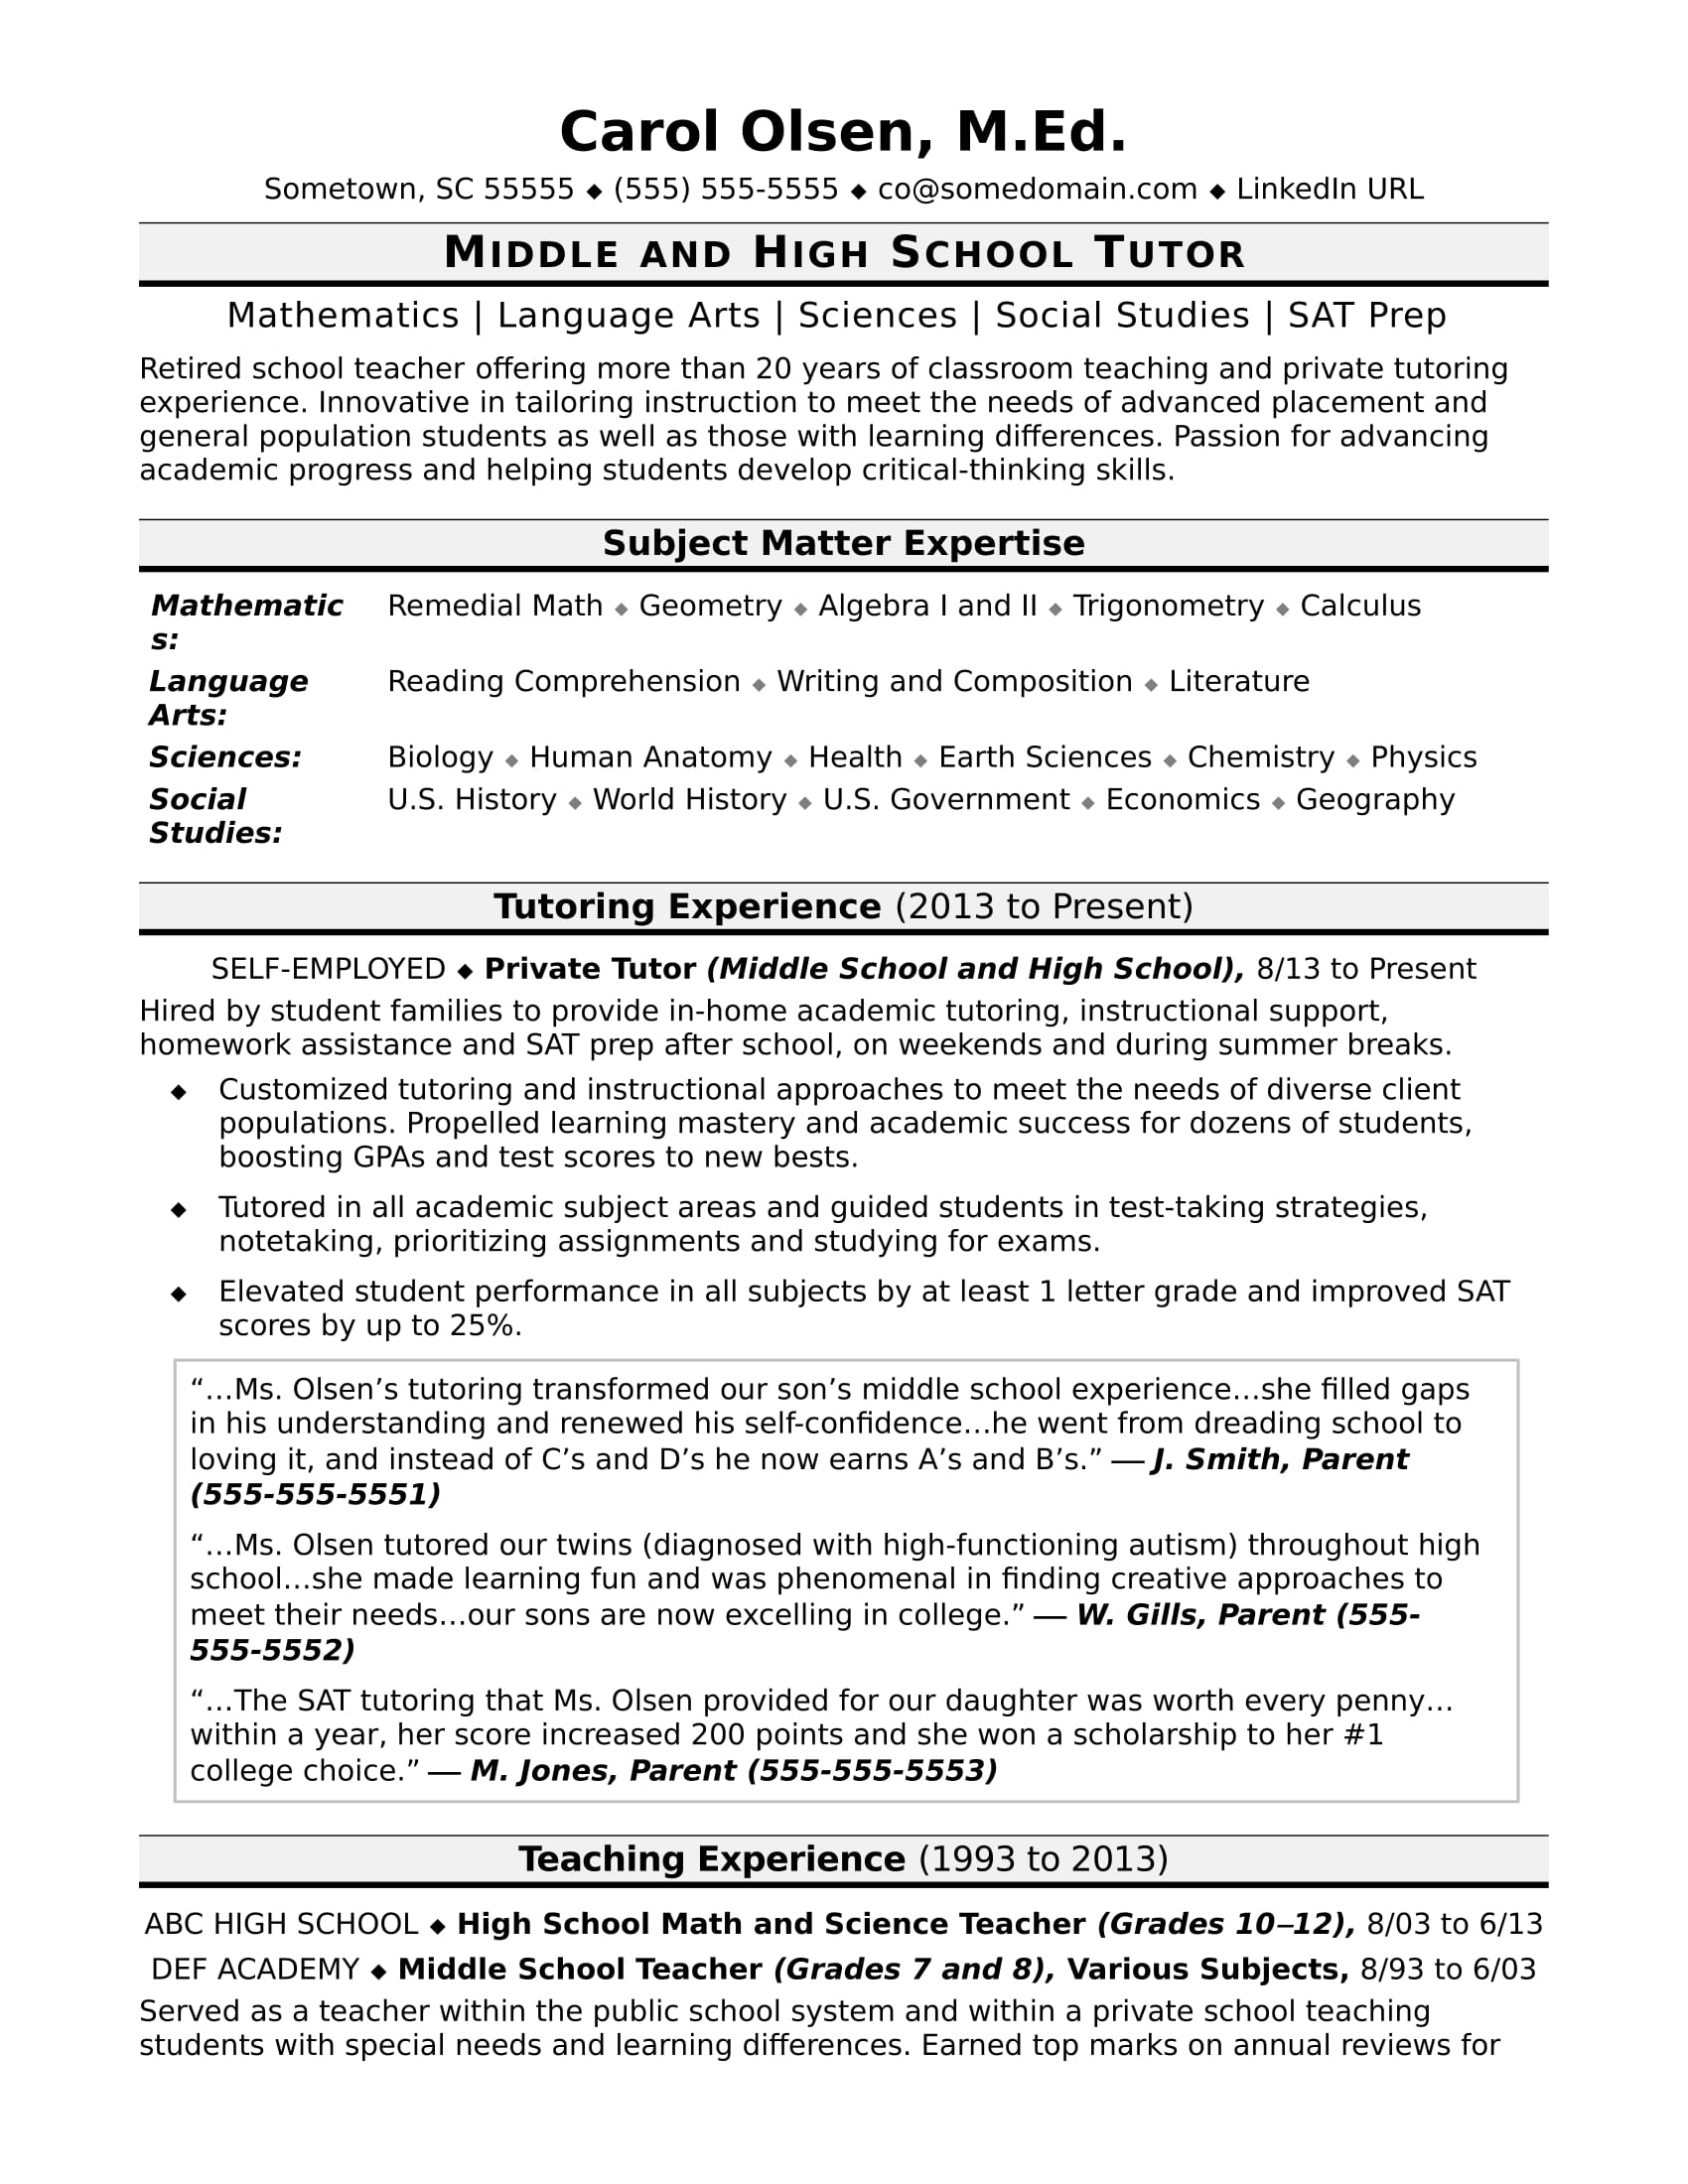 tutor resume sample monster responsibilities of for formatting tips professional examples Resume Responsibilities Of A Tutor For Resume